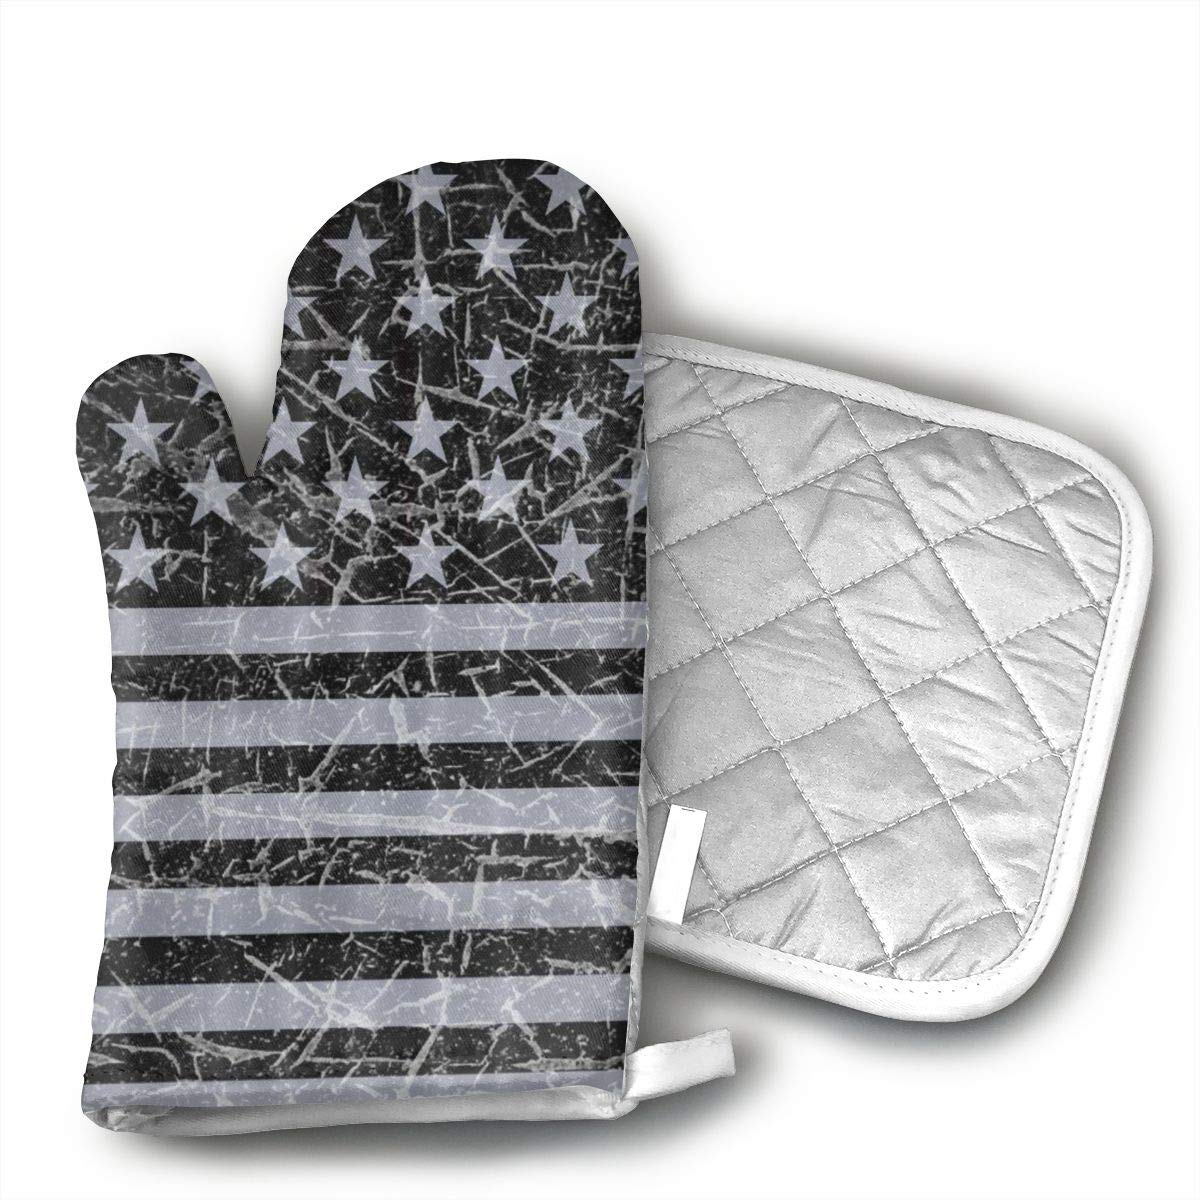 Retro Distressed USA Flag Patriotic Oven Mitts Kitchen Cooking Cotton Microwave Oven Gloves Mitts Pot Pad Heat Proof Protected Gloves